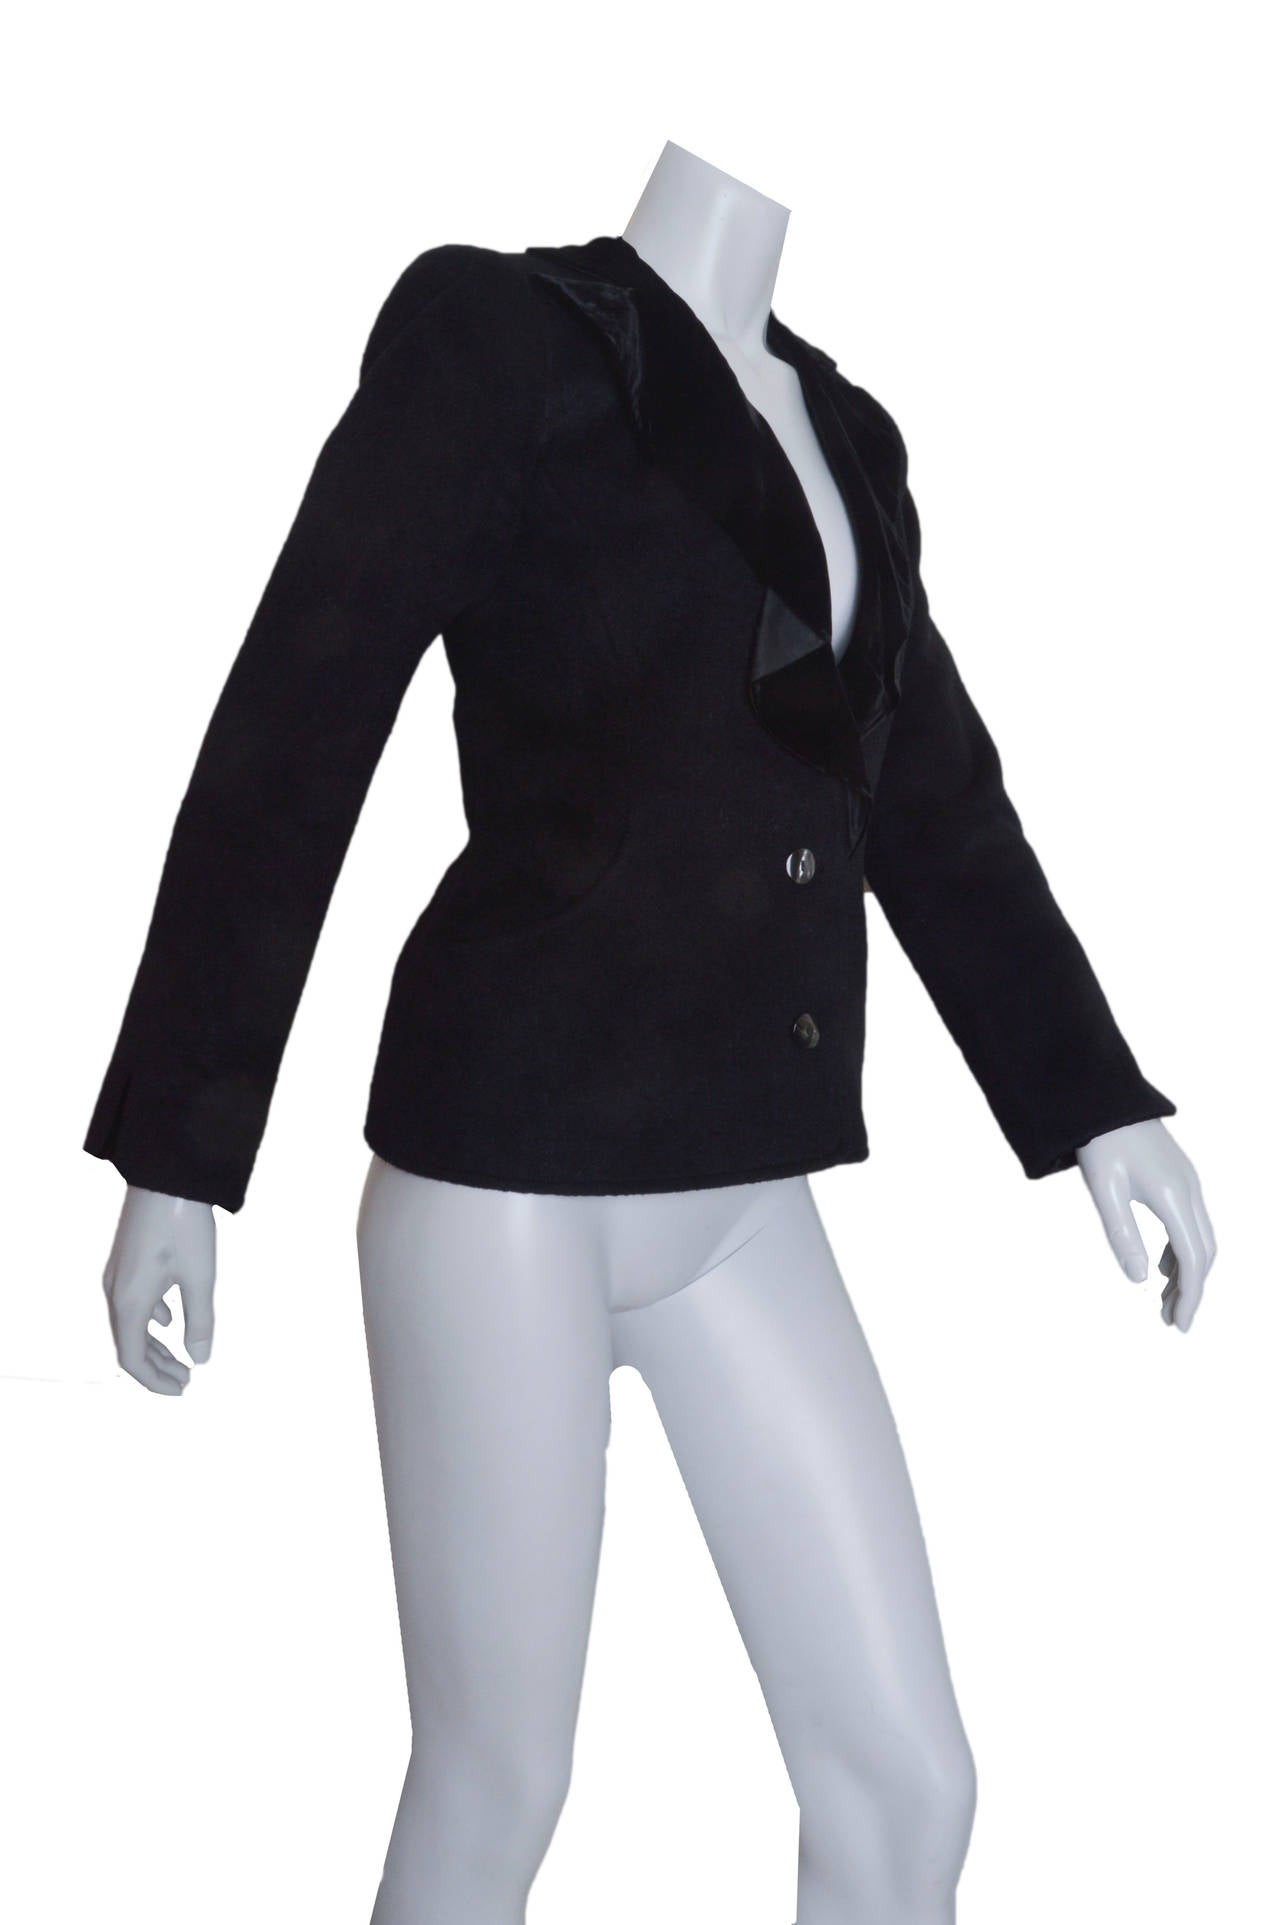 Classic YSL black tuxedo jacket. Wool with silk velvet lapels and cuffs. Fitted shape. Two button closures. Lightly padded shoulders. Two hip pockets with velvet lining. Lined. No size tag found.